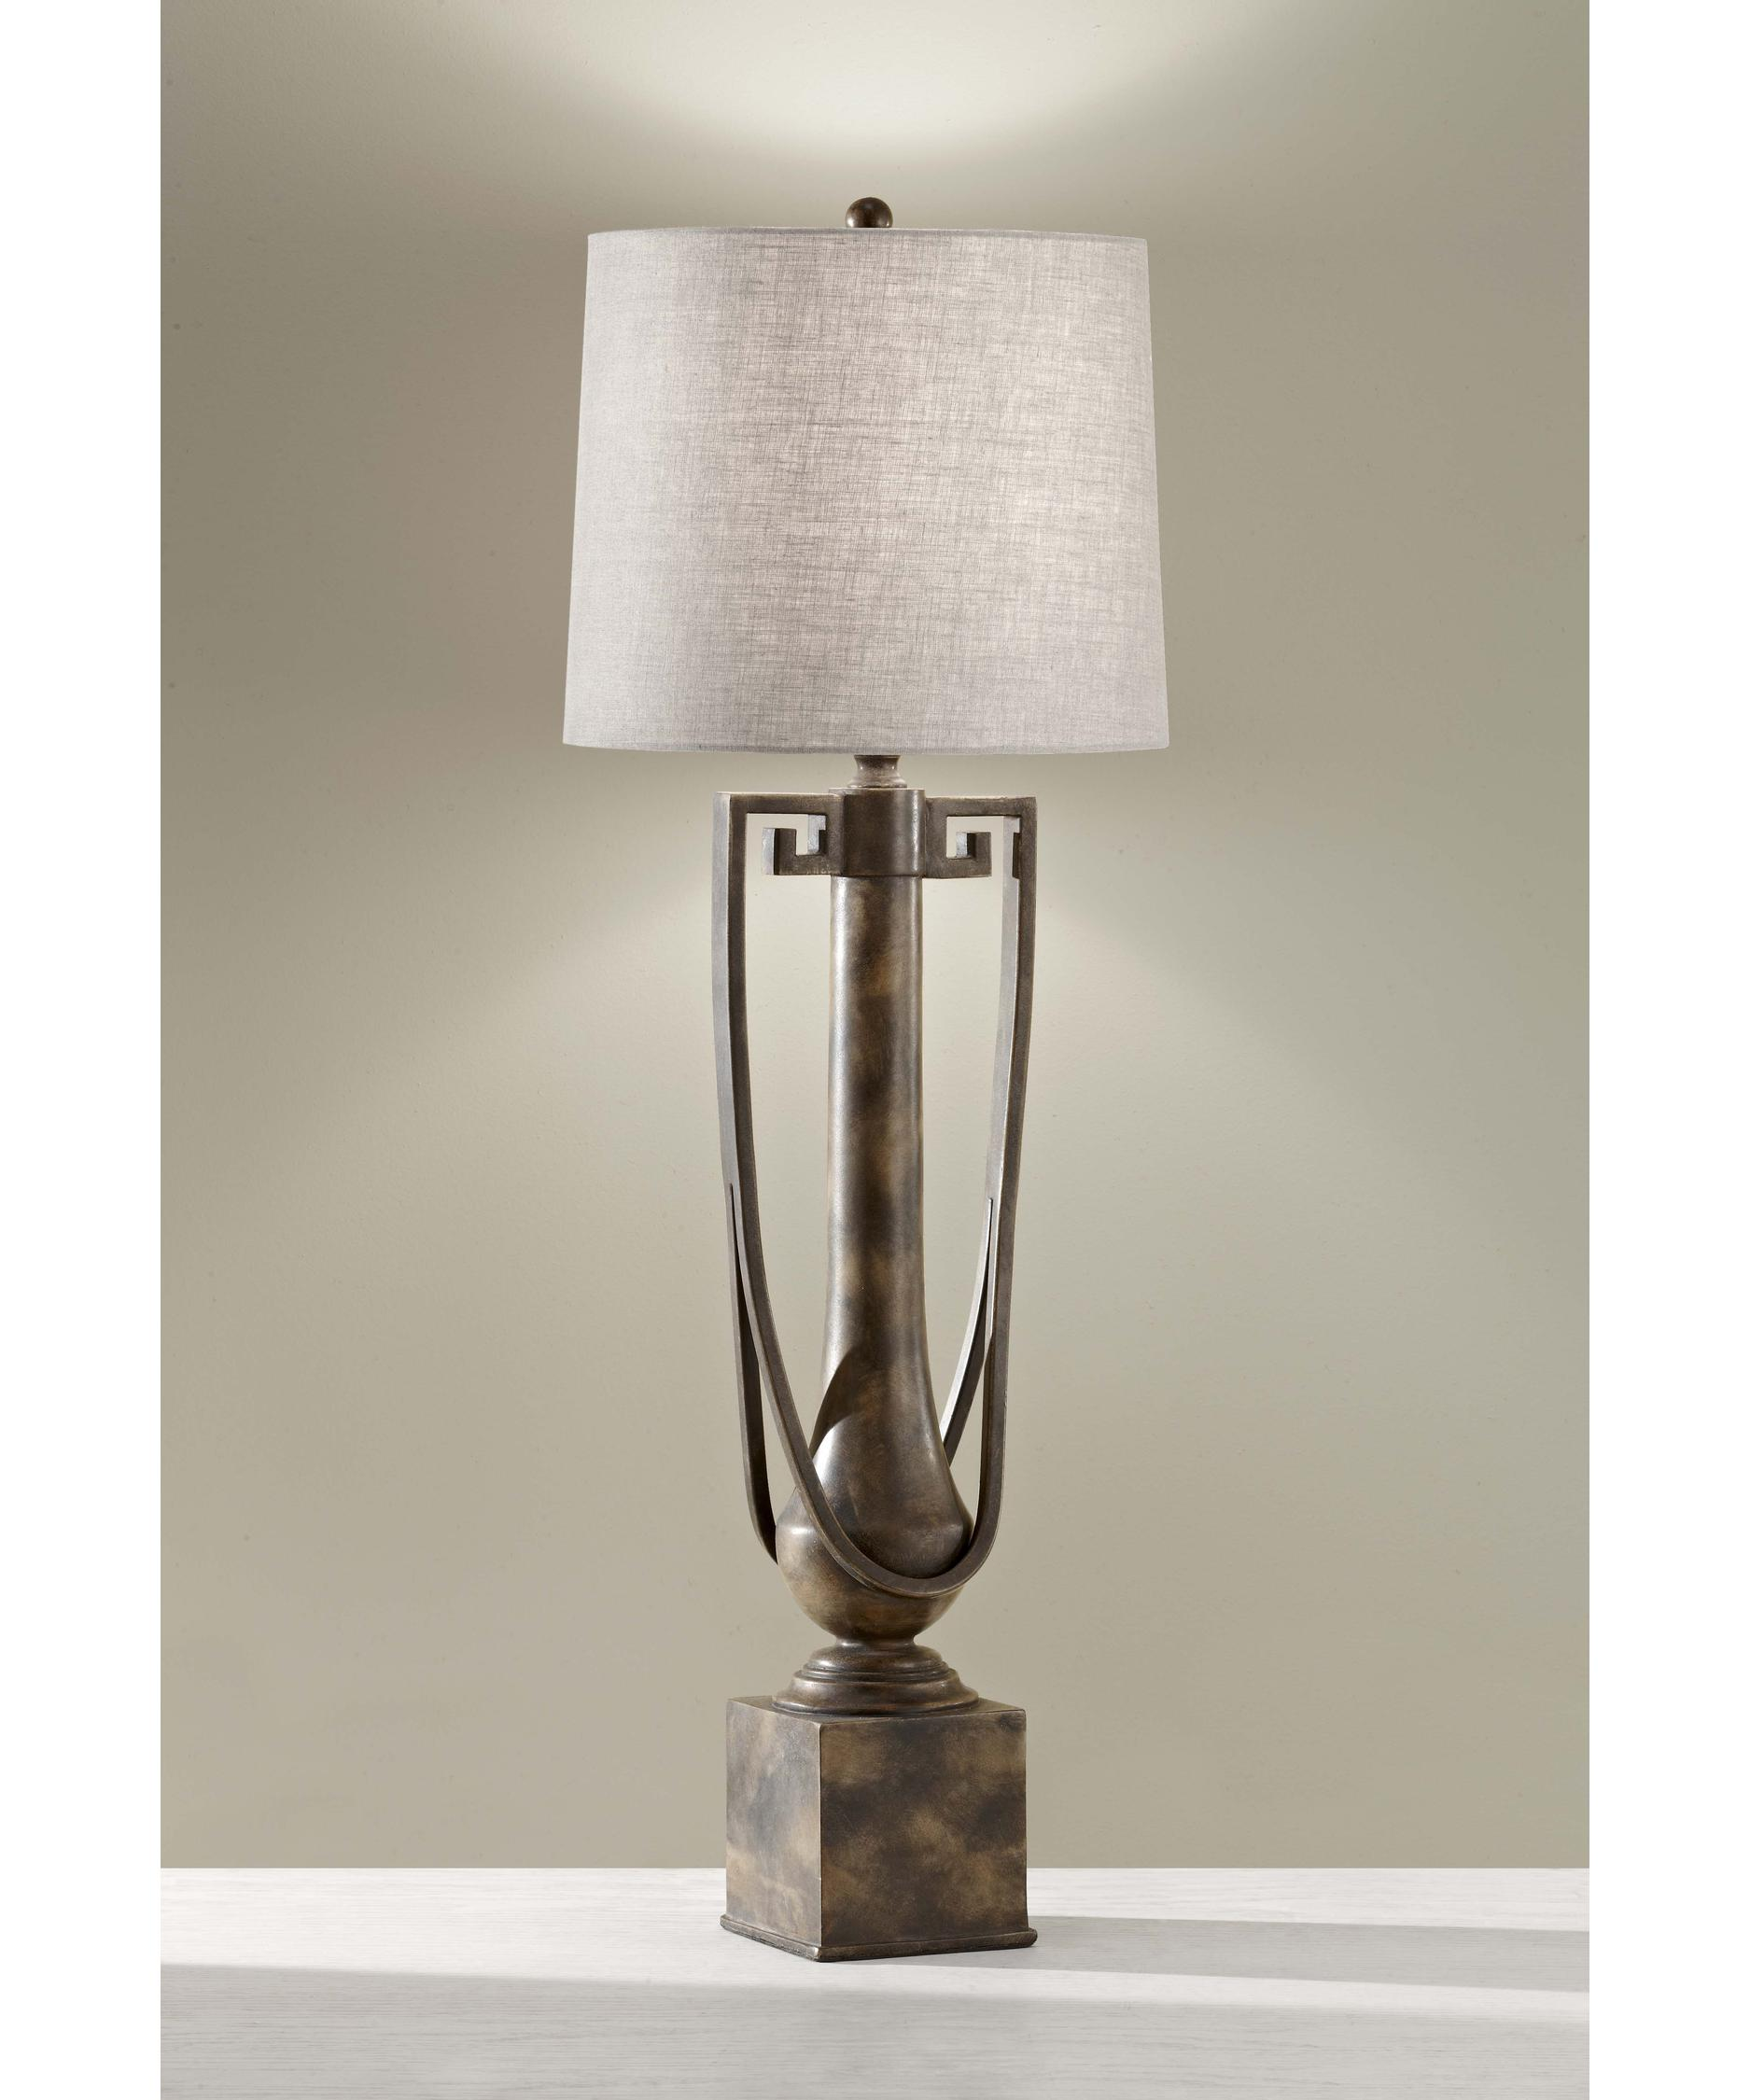 Murray Feiss 10073 Dimitri 34 Inch Table Lamp Capitol